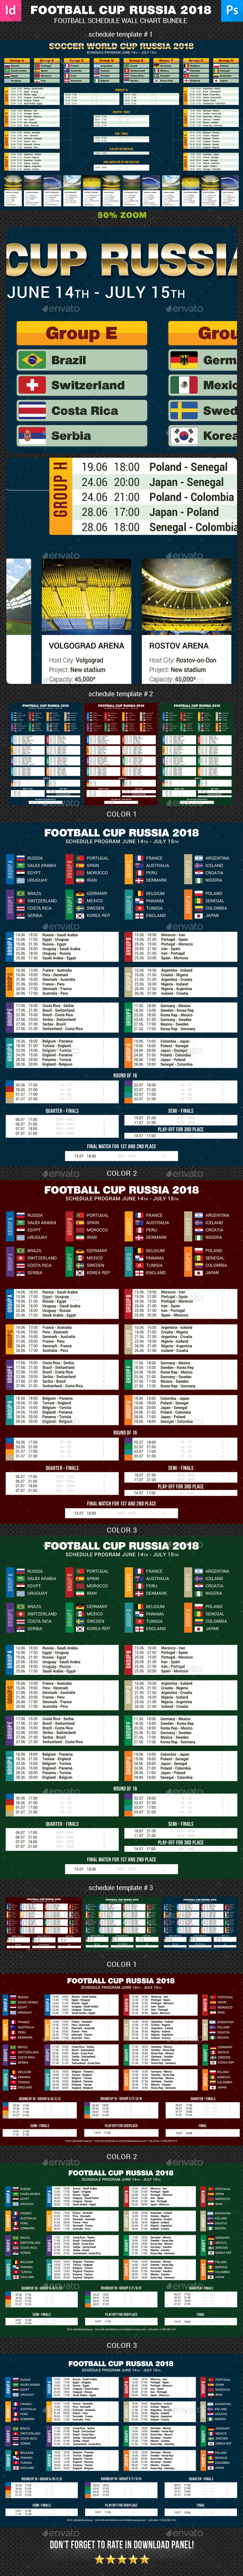 World Soccer Cup Russia 2018 Schedule Bundle - Sports Events